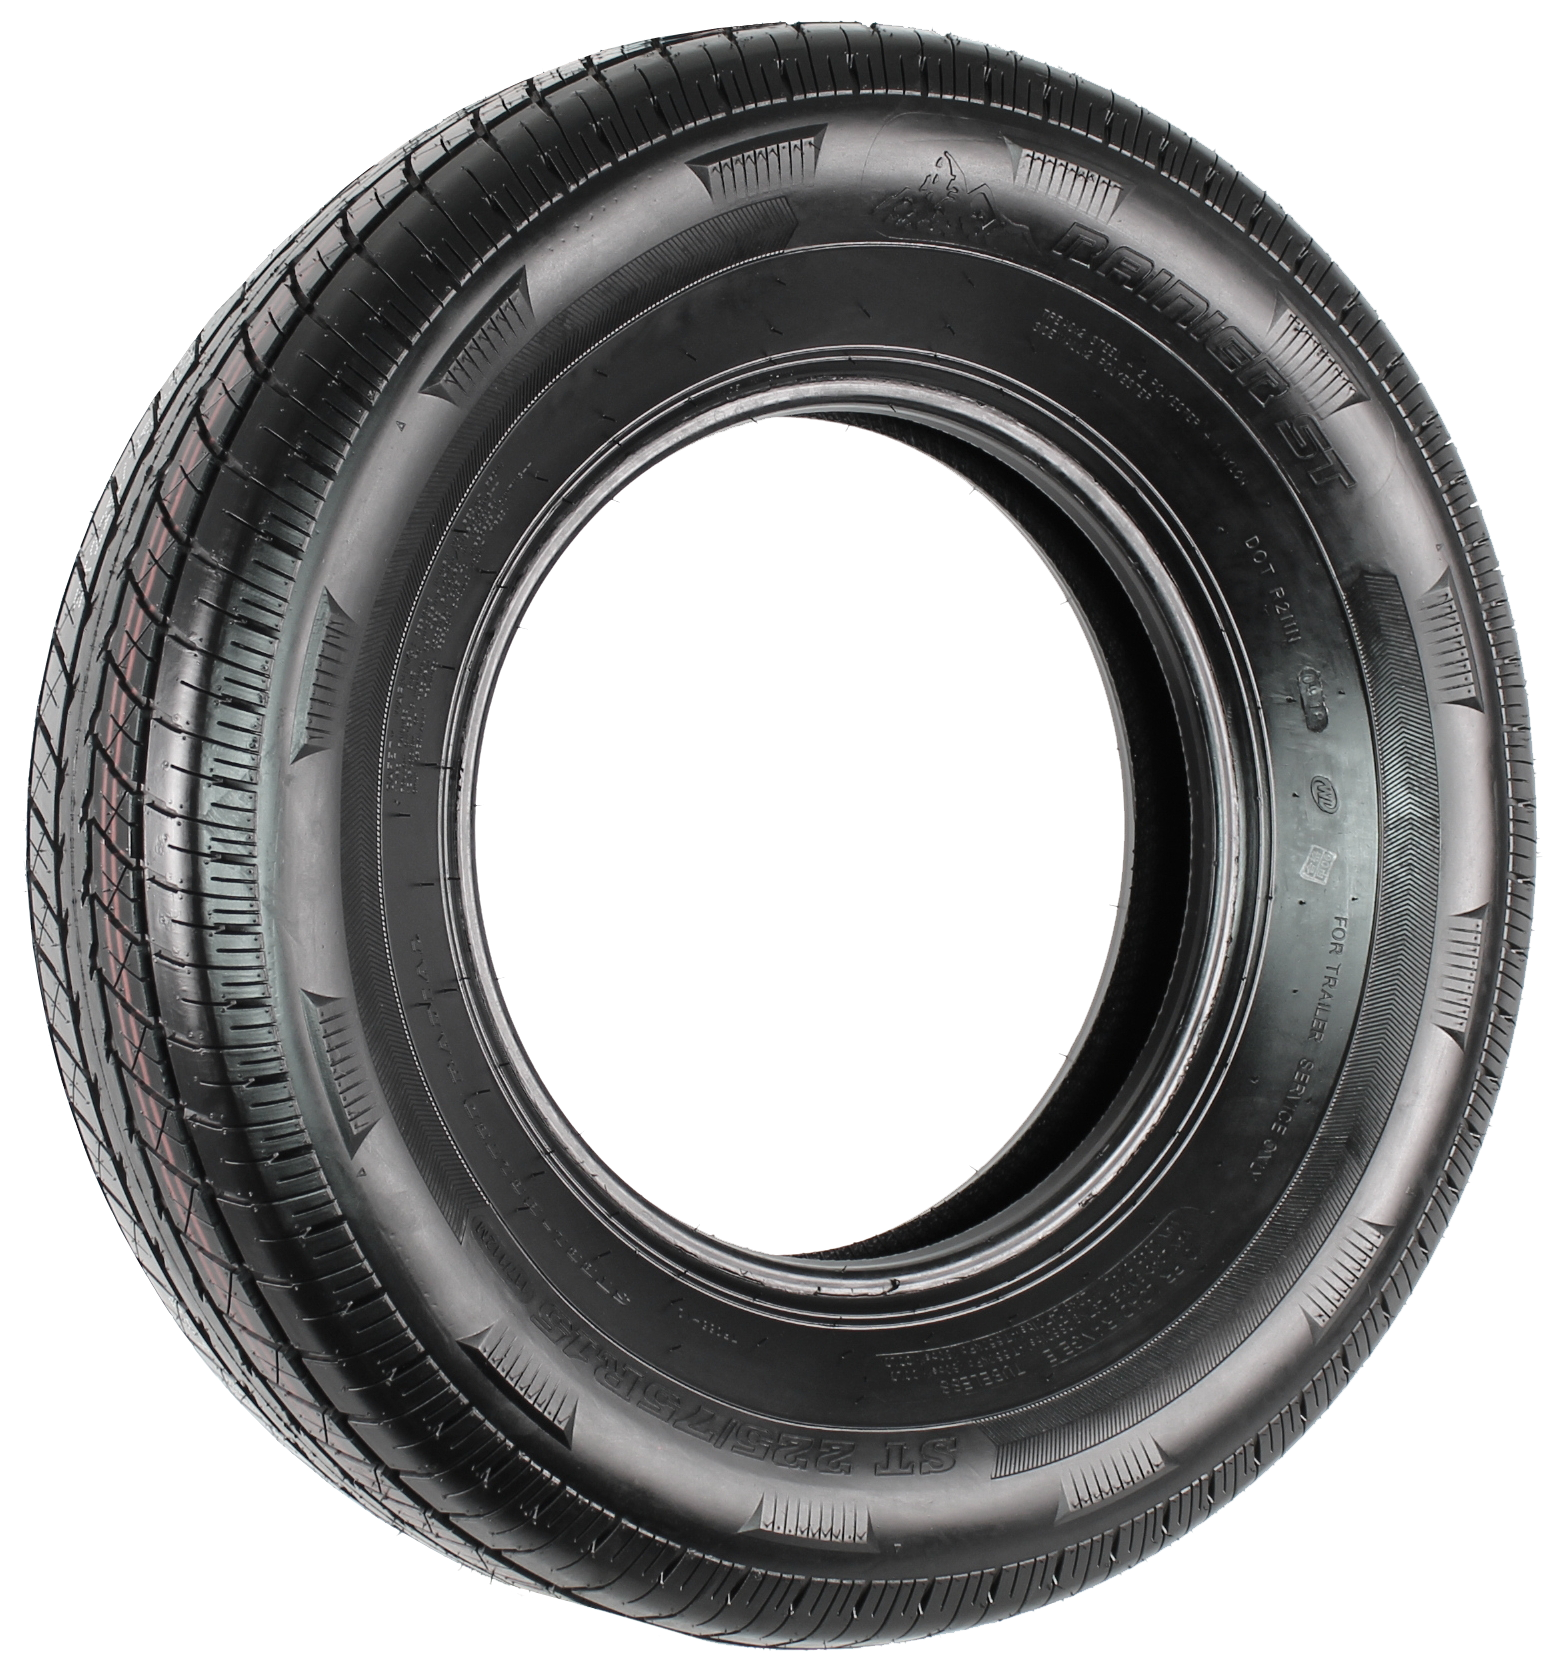 Rainier ST225/75R15 LRE 10-Ply Radial Trailer Tire Image